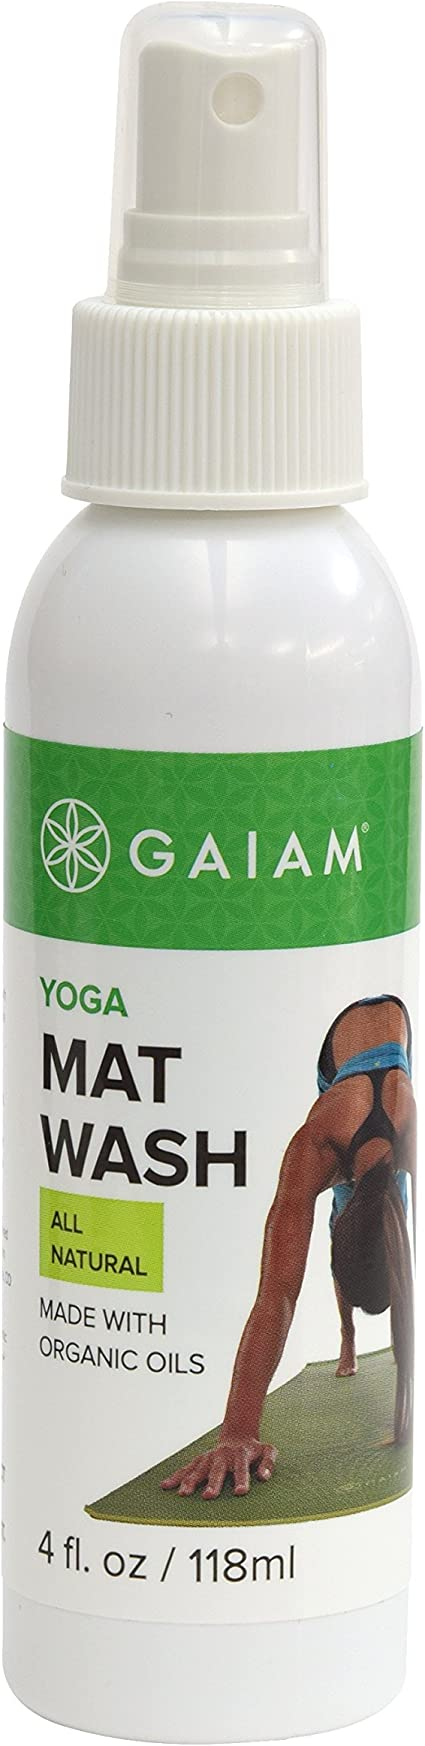 Amazon Com Gaiam Yoga Mat Cleaner Spray 4oz Sports Outdoors